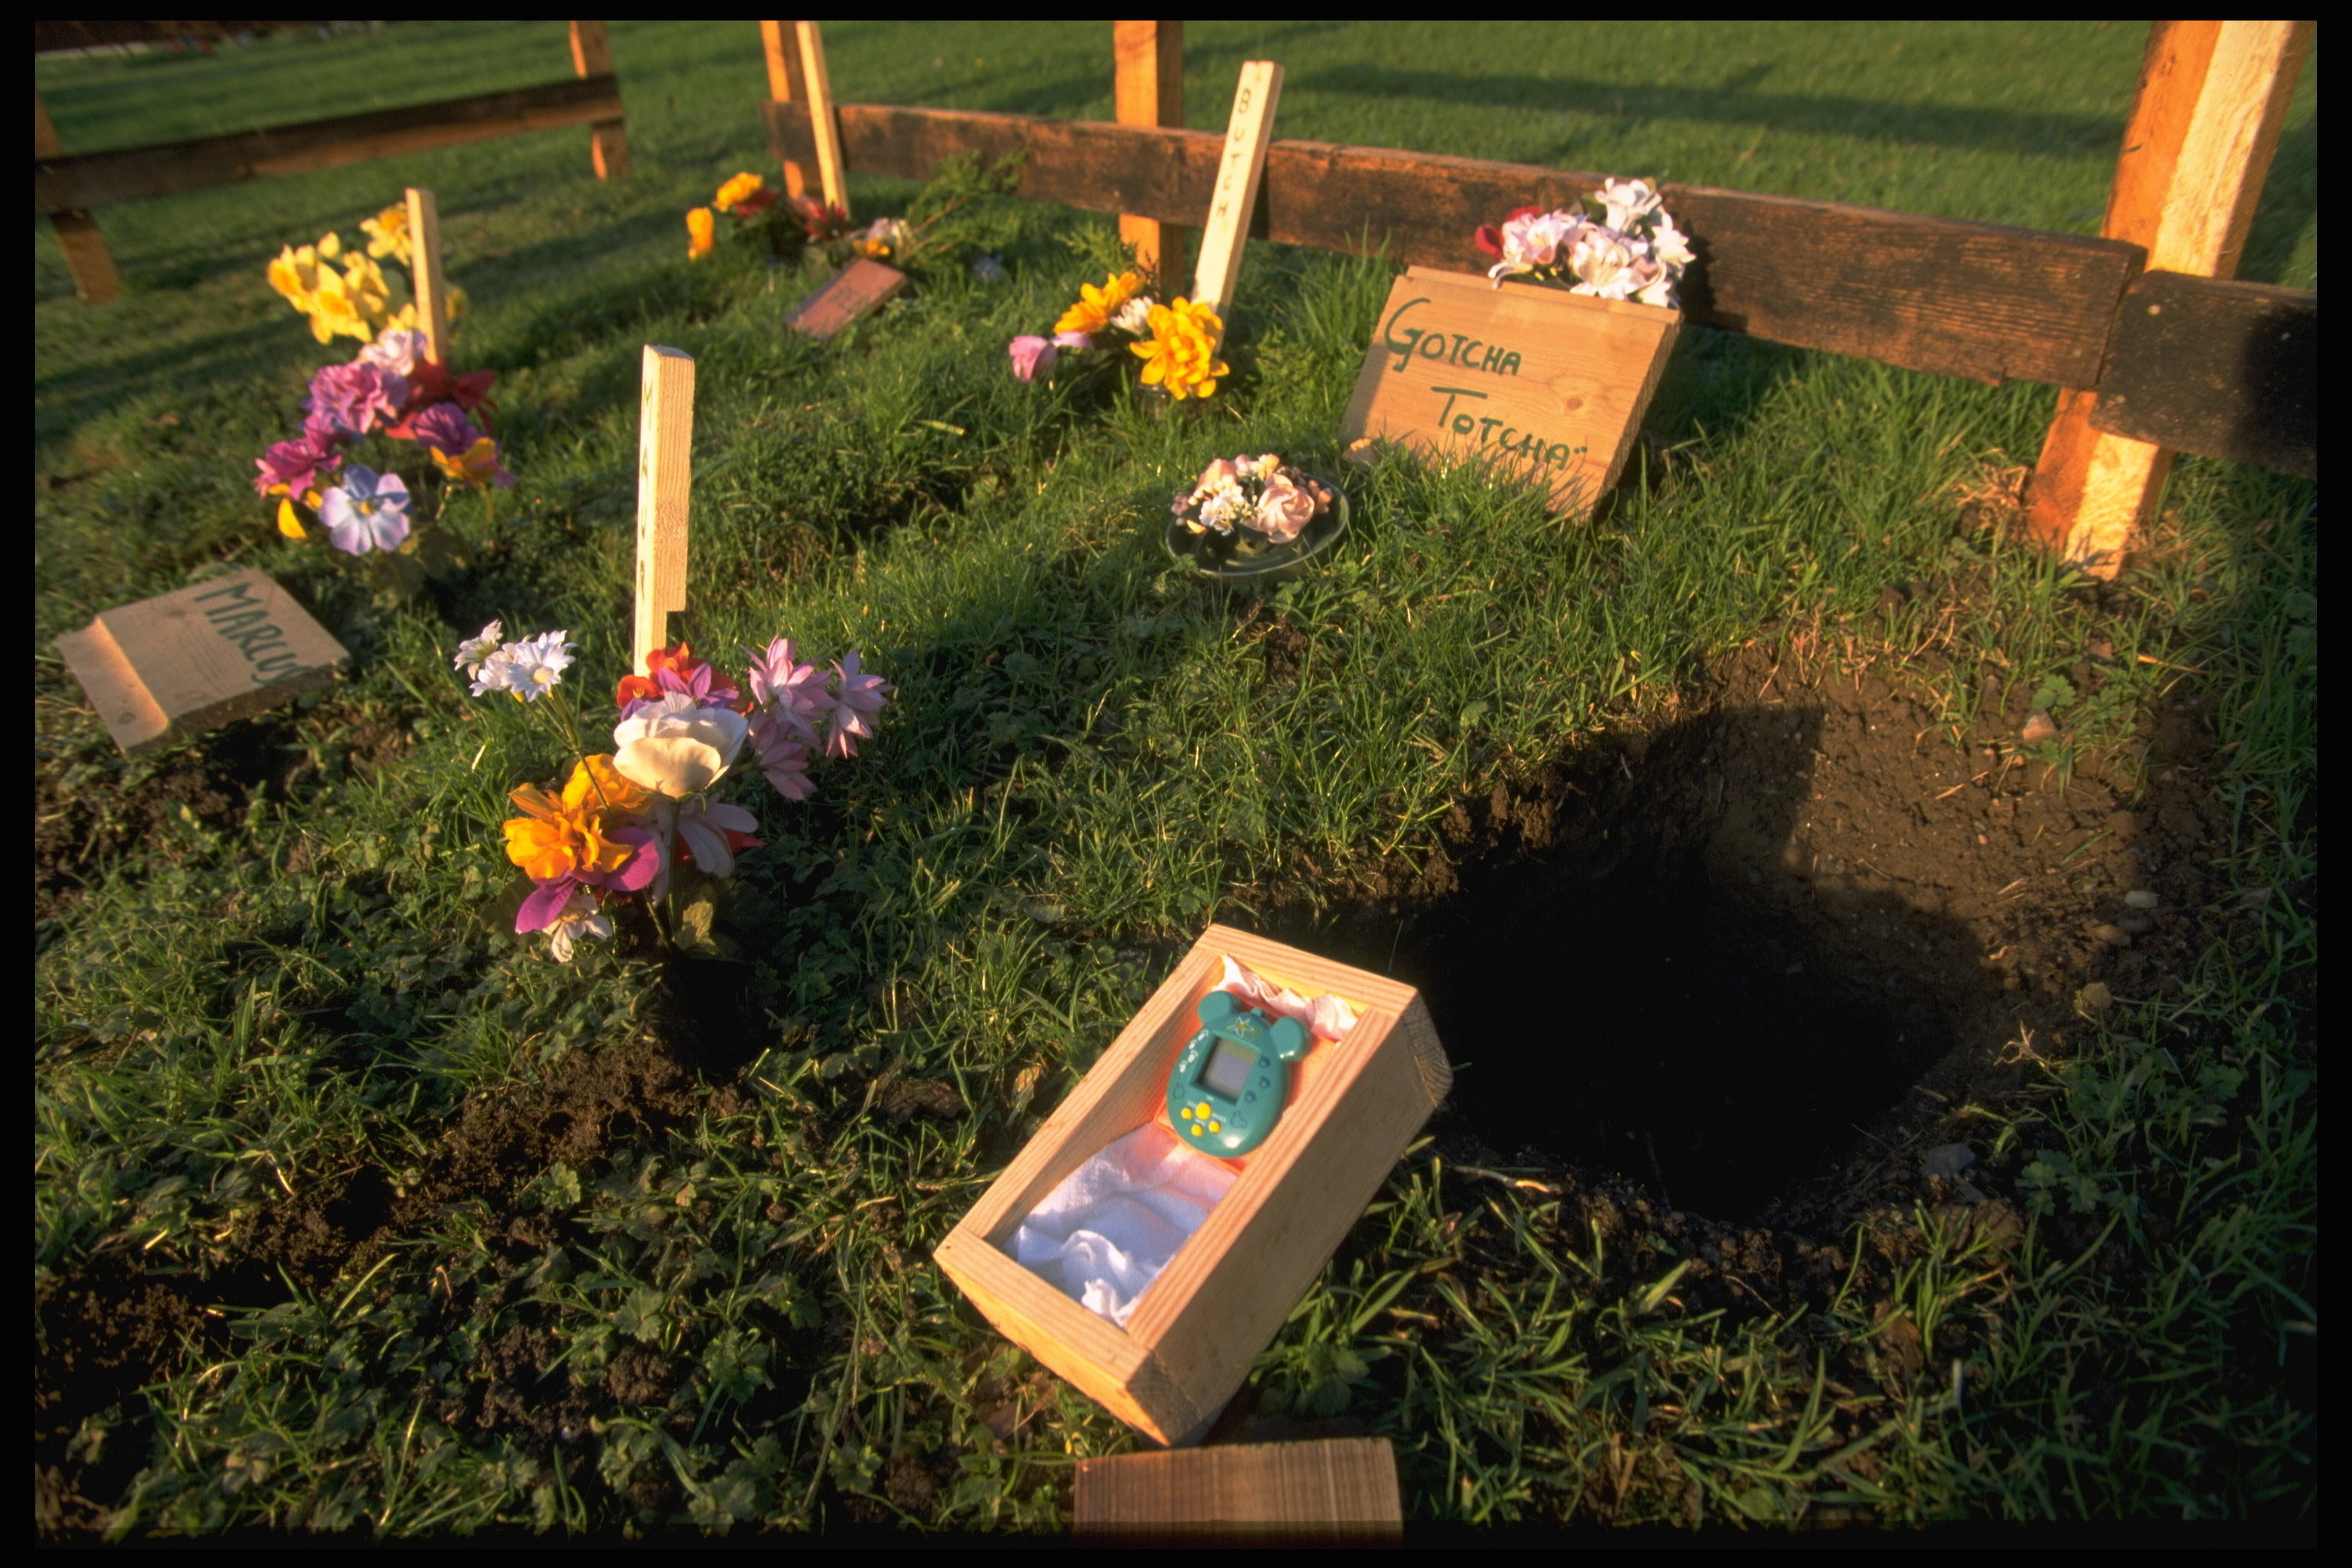 A photo of Tamagotchi gravesite in the English countryside.